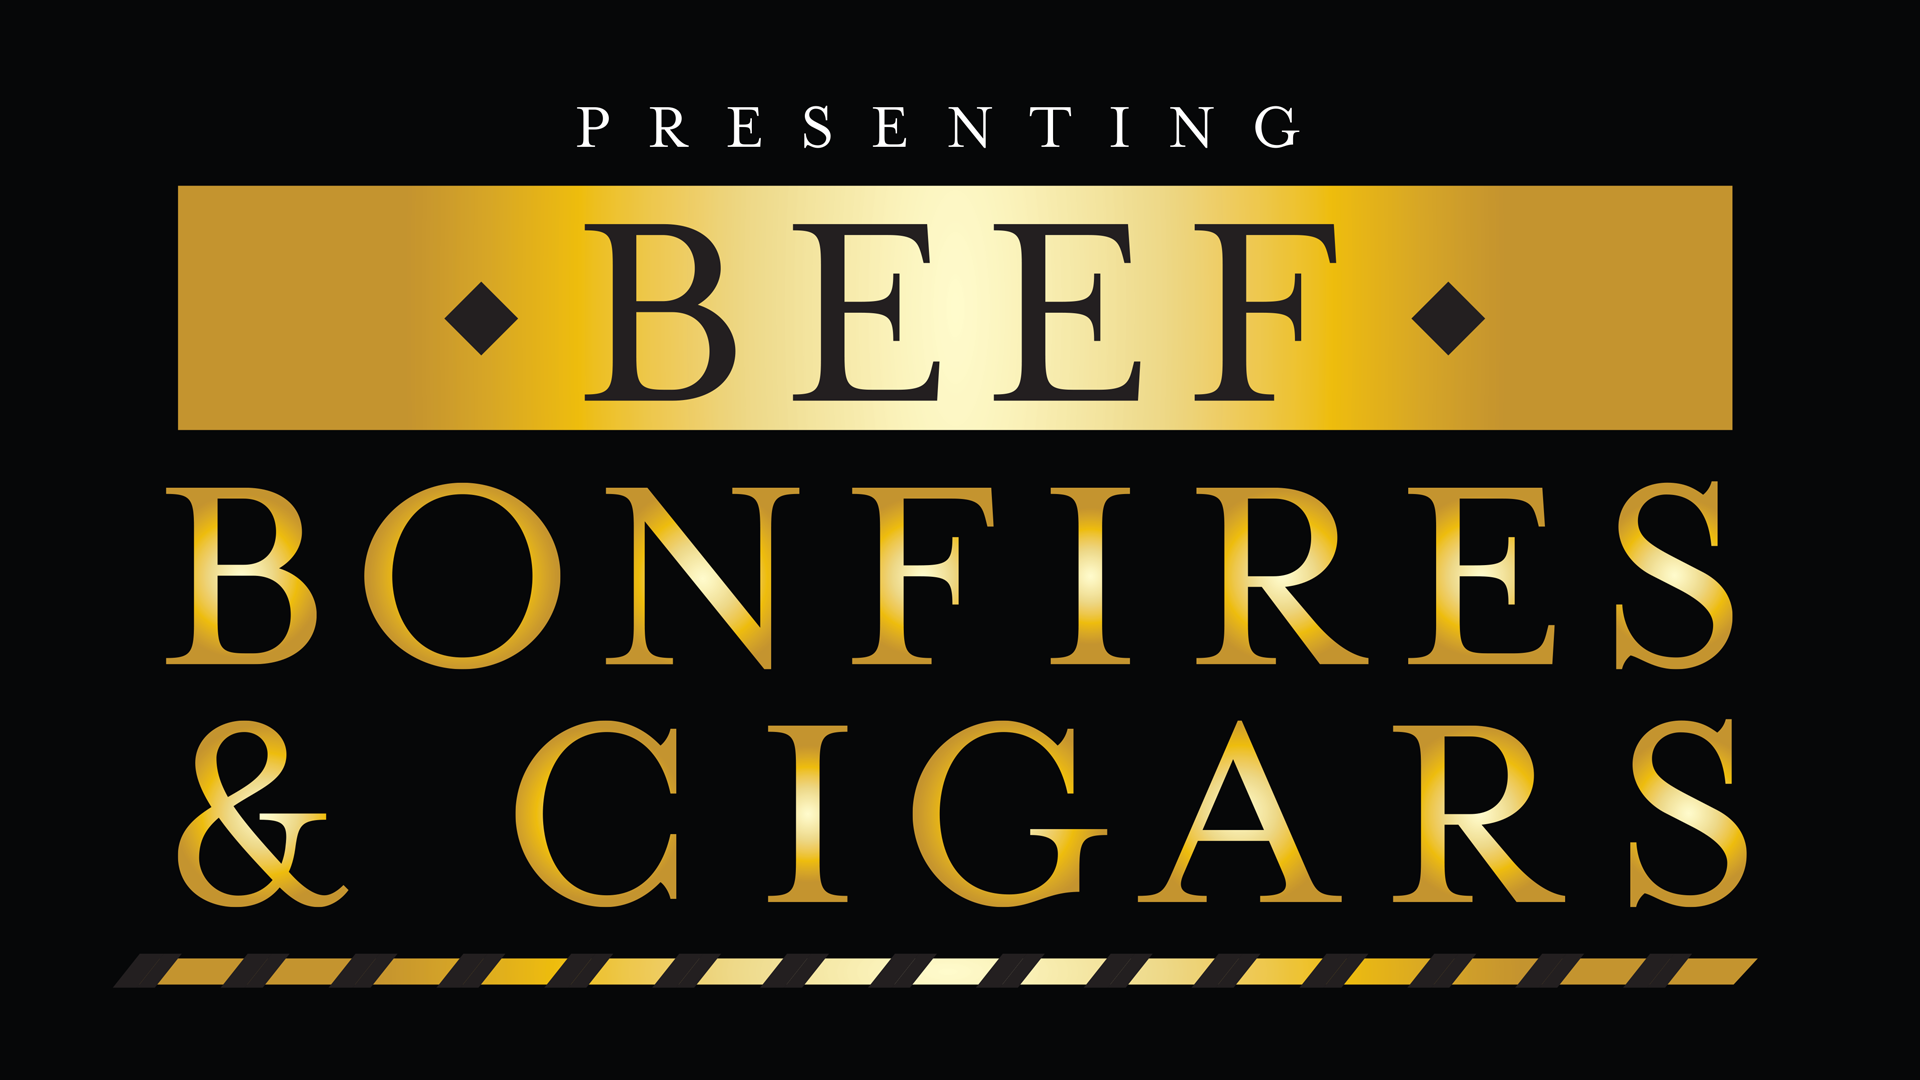 Beef_bonfires_cigars